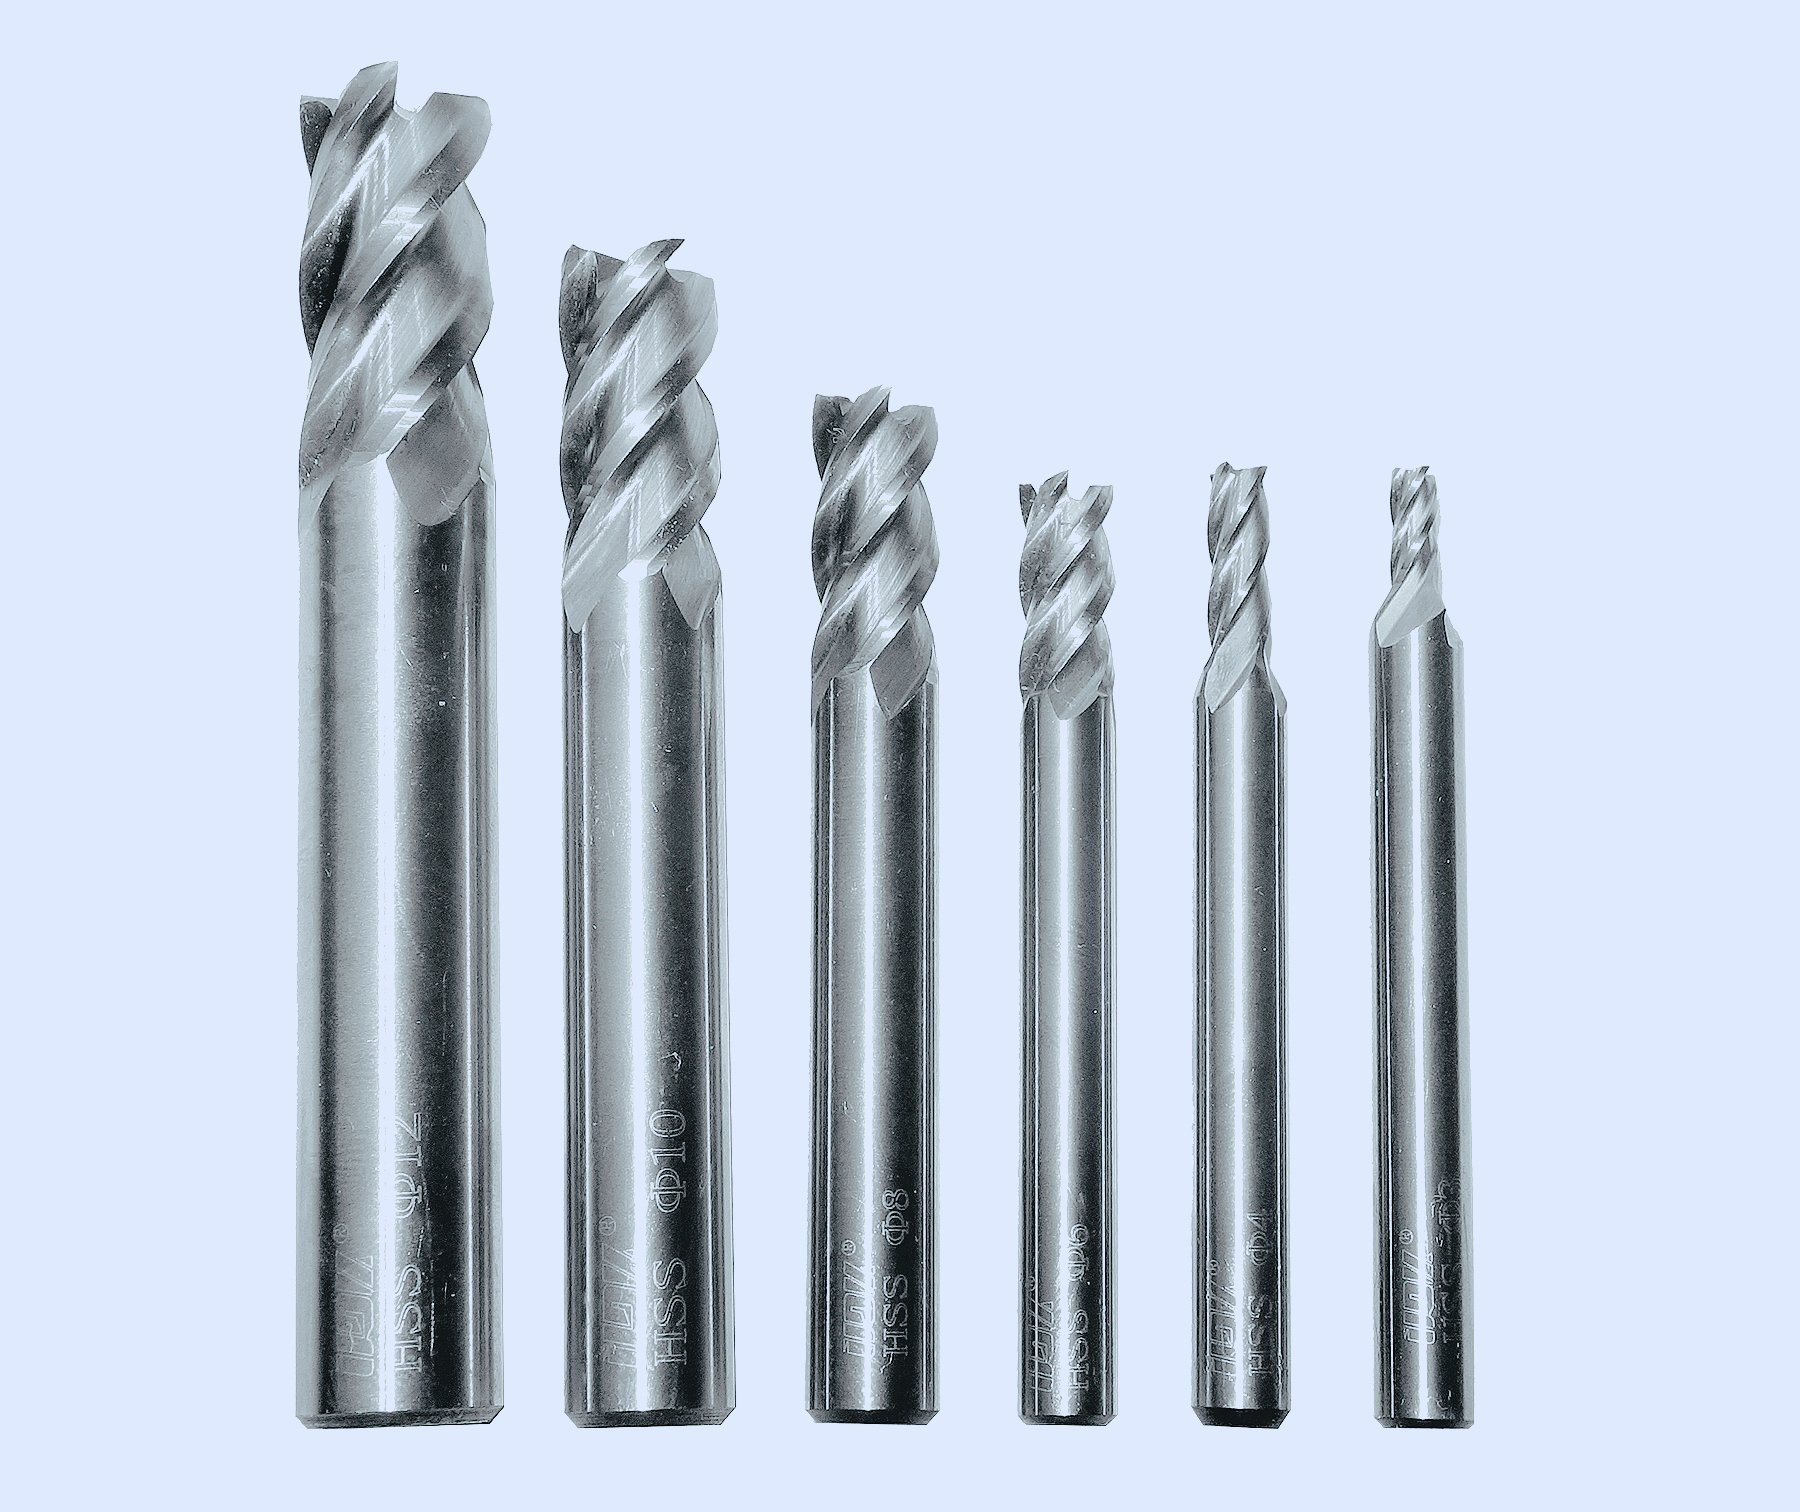 6mmDia/×6mmShank/×100mmOAL Wokesi 6mm Cutting Dia,6mm Shank Dia,100mmOAL,Extra Long Shank,HRC60,4Flutes,AITIN Coated,Solid Tungsten Carbide,Square End Mill Flat Endmills CNC Router Bits